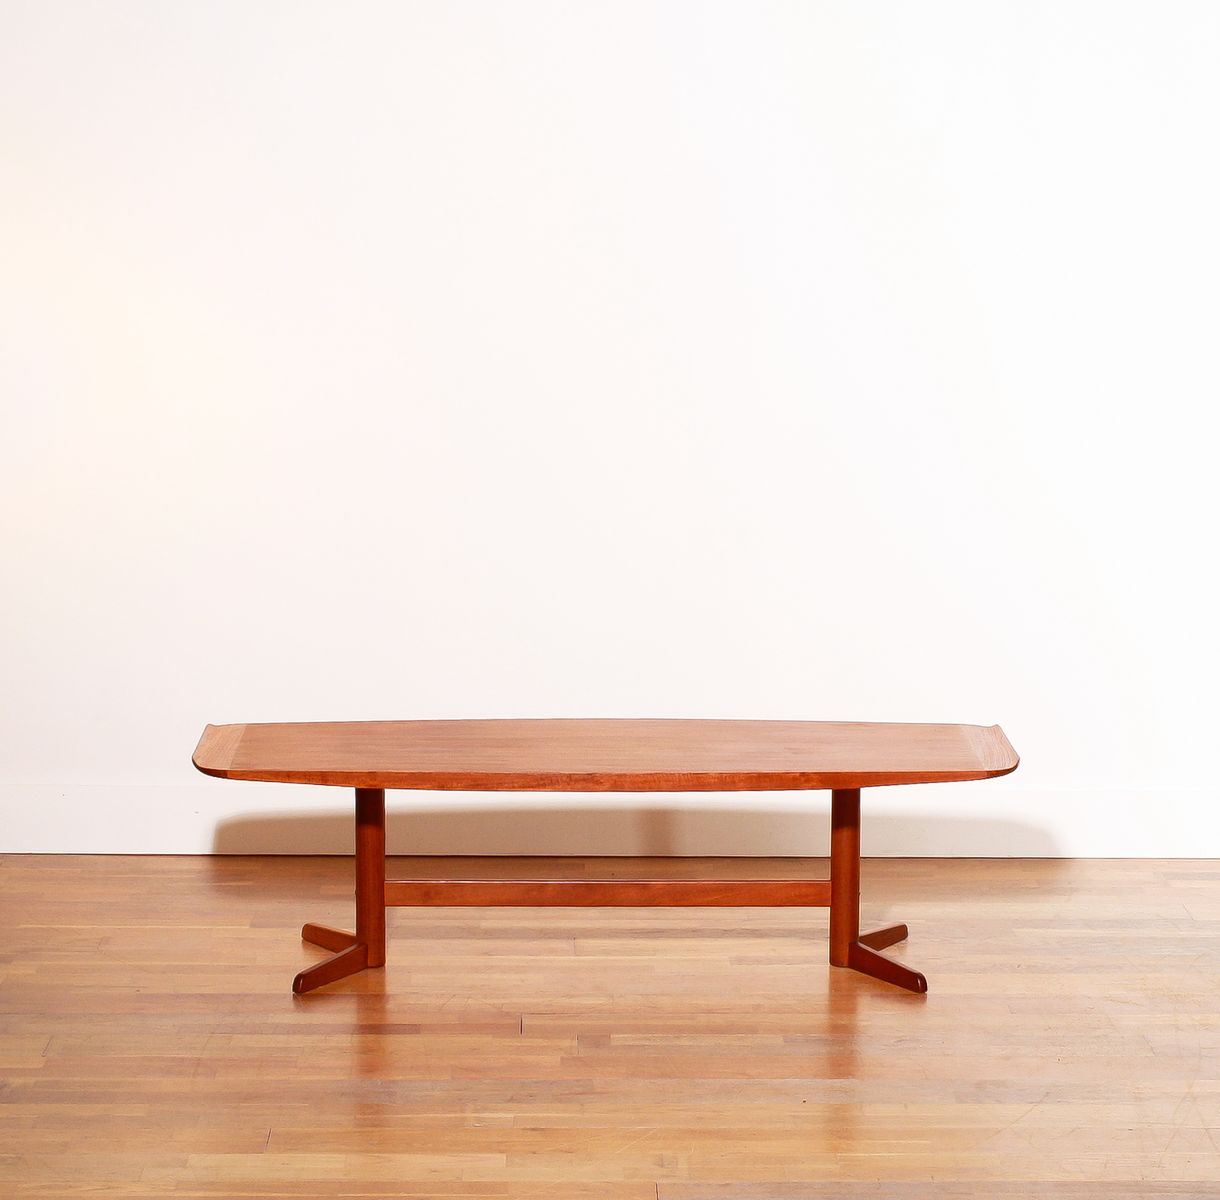 Danish Teak Coffee Table From Mogens Kold M Belfabrik 1950s For Sale At Pamono